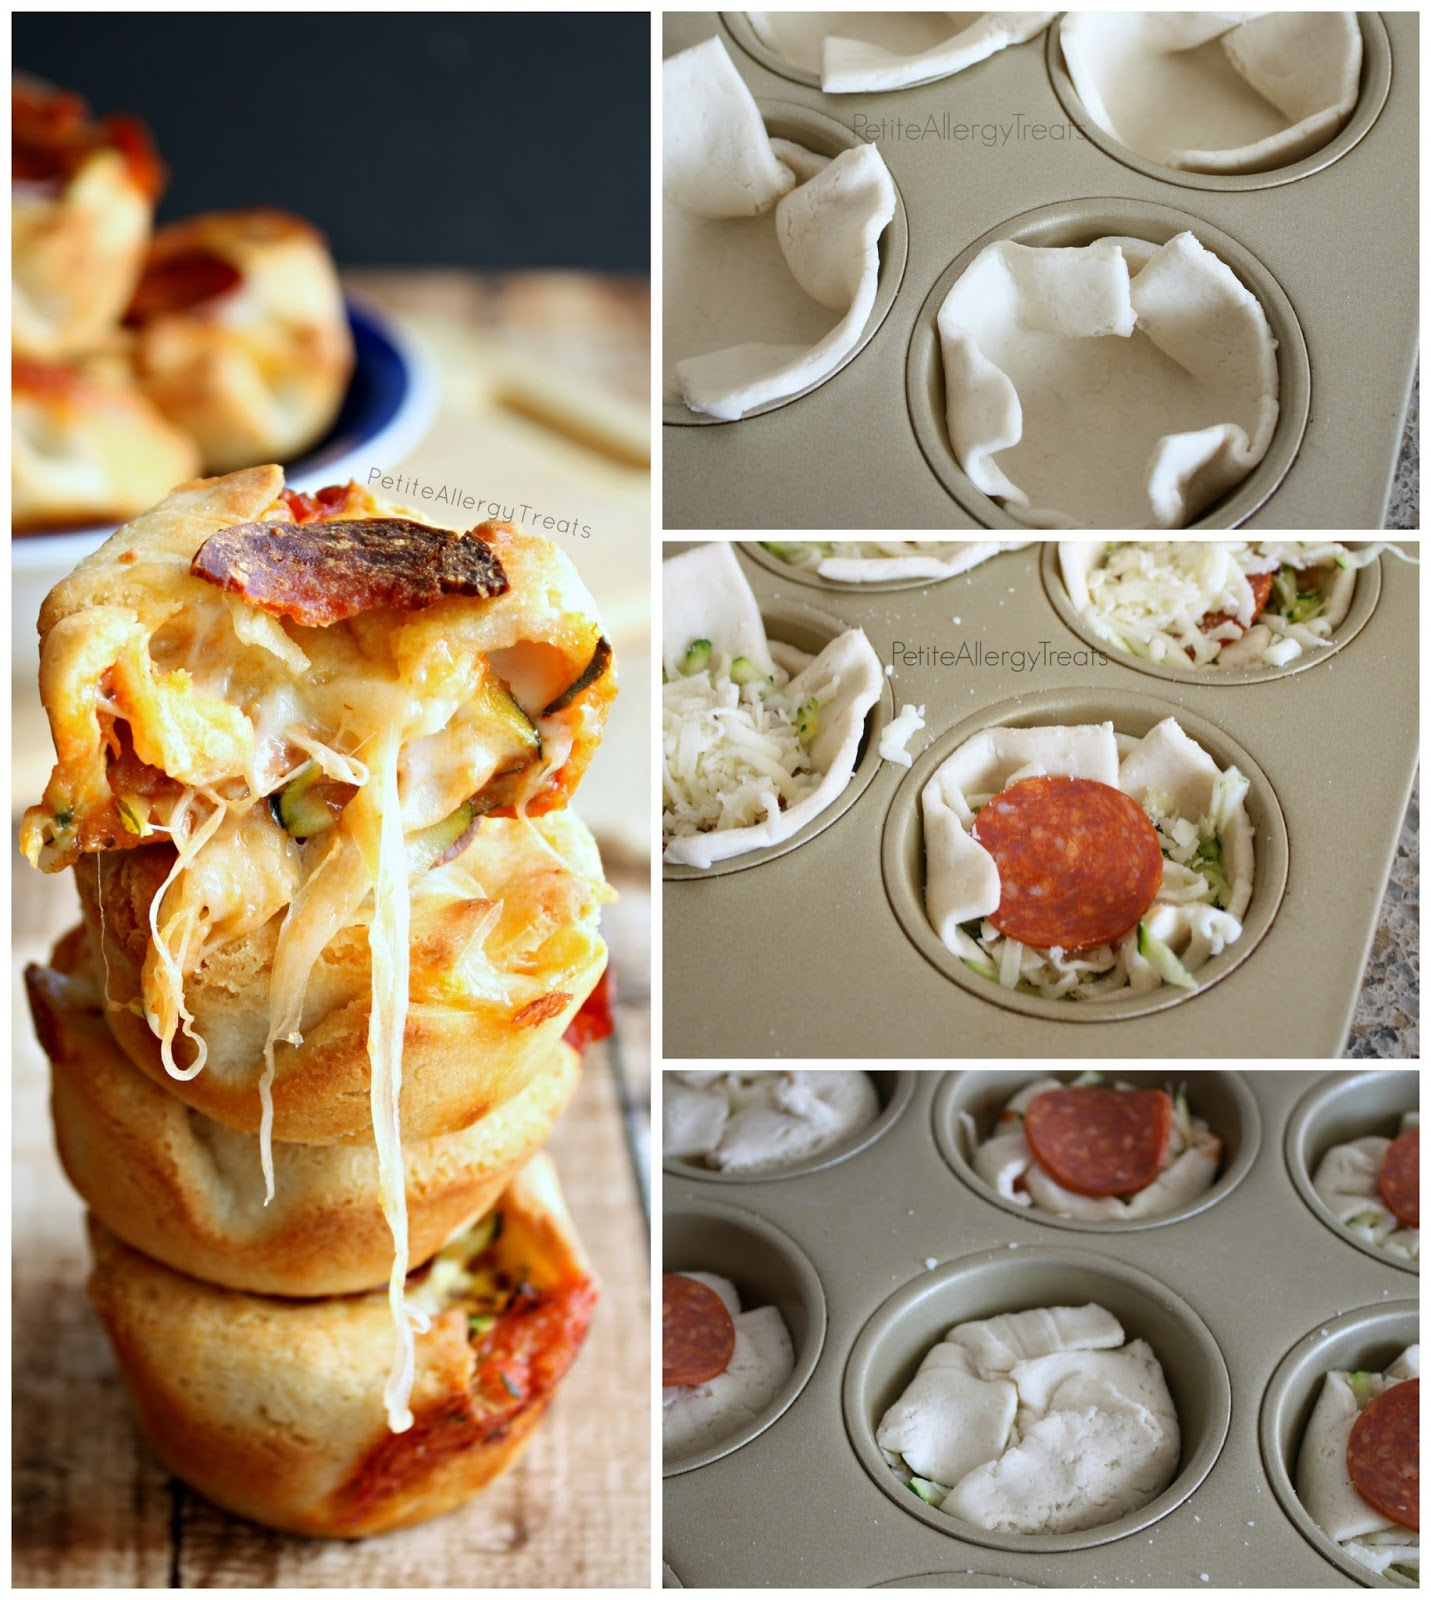 Pizza Pocket Bites (gluten free egg free)- Pizza pockets filled with gooey cheese and vegetables